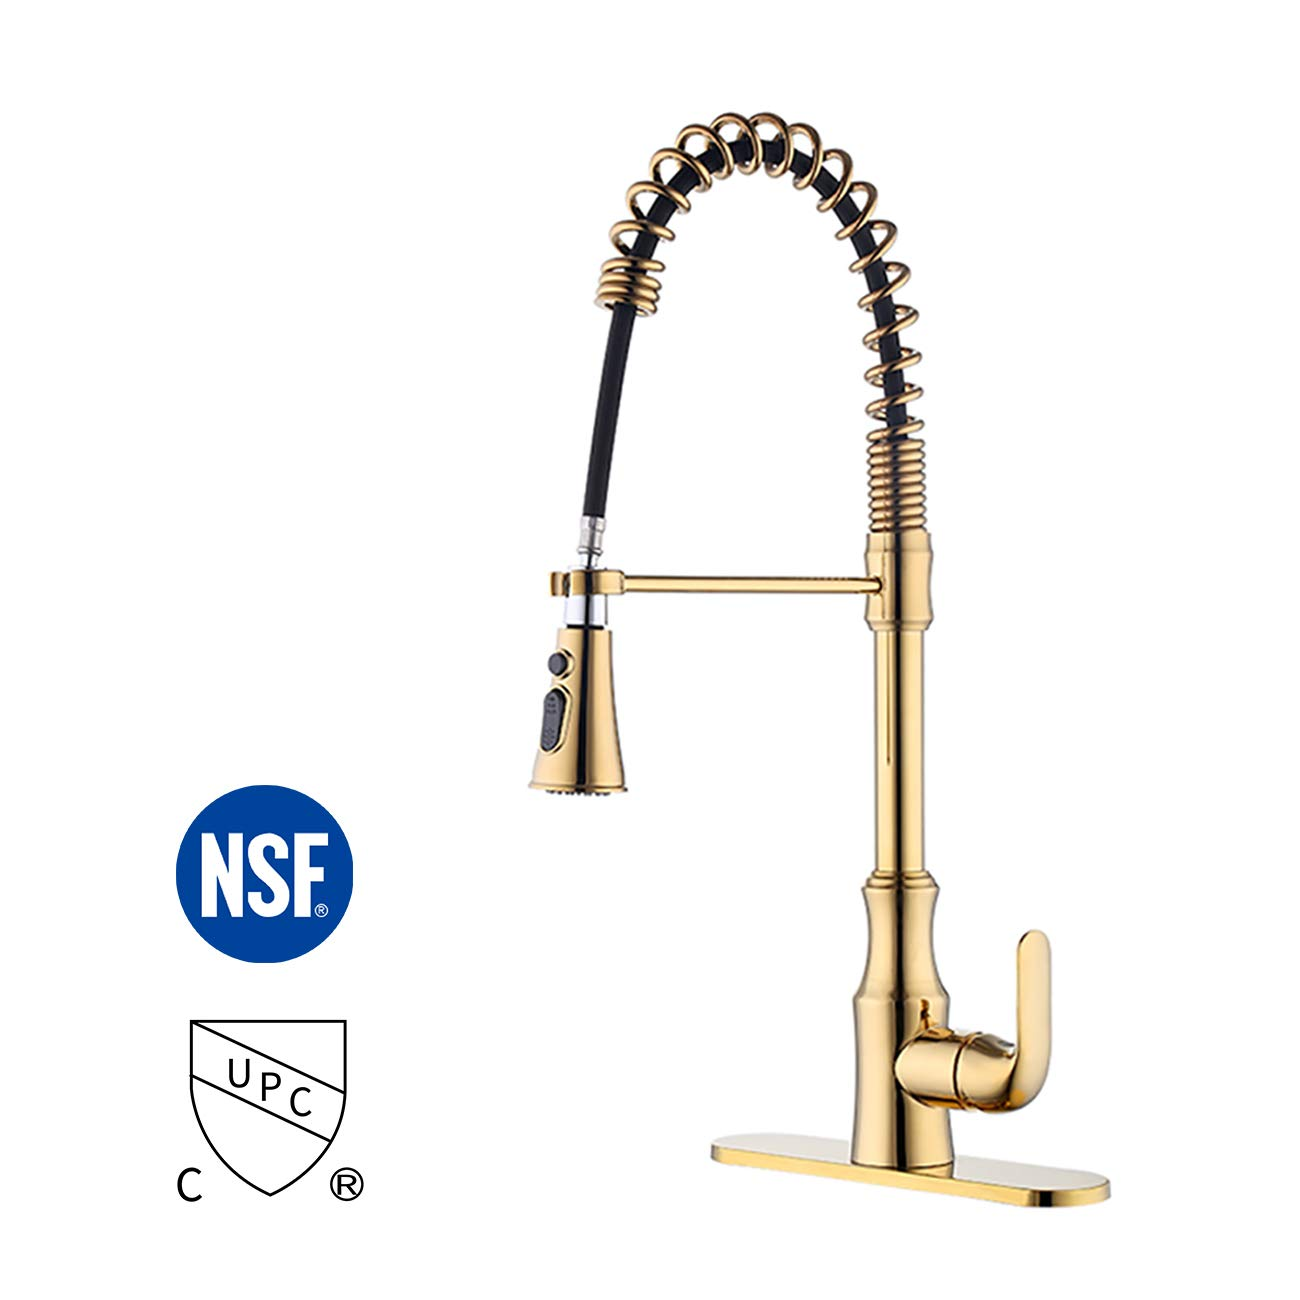 KES Brass Kitchen Sink Faucet with Pull Down Sprayer Titanium Gold cUPC NSF Certified Single Handle Pull Out Faucet, L6936BLF-PG by KES